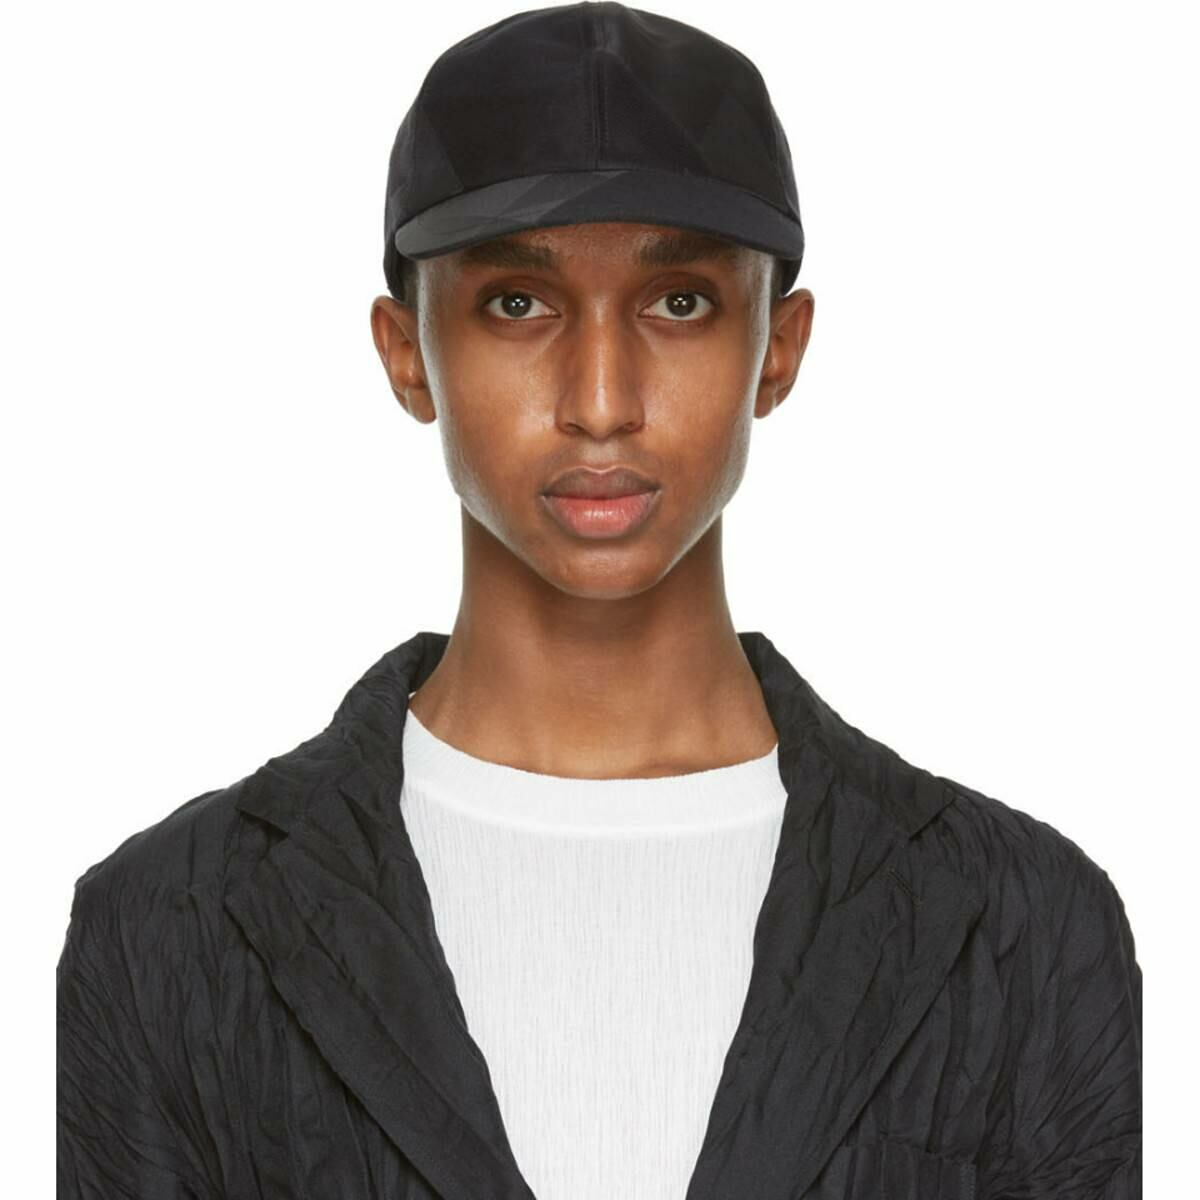 Issey Miyake Men Black Triangle Cap Ssense USA MEN Men ACCESSORIES Mens CAPS